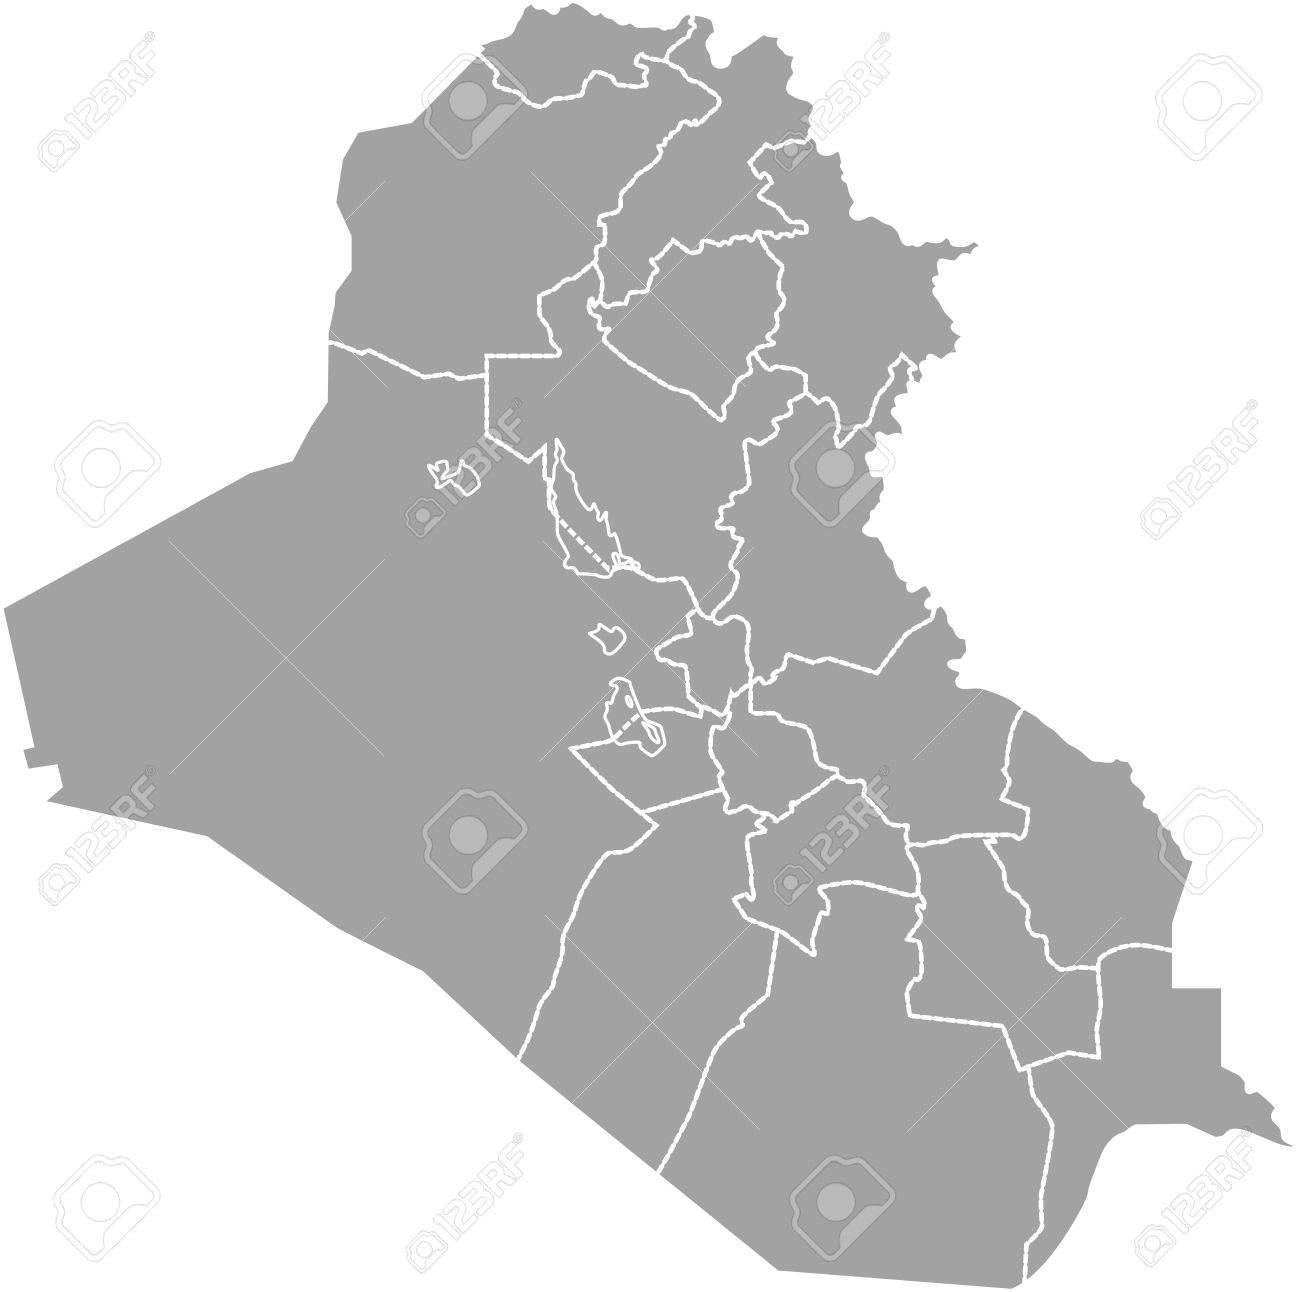 Iraq Map Outline Vector With Borders Of Provinces Or States Royalty